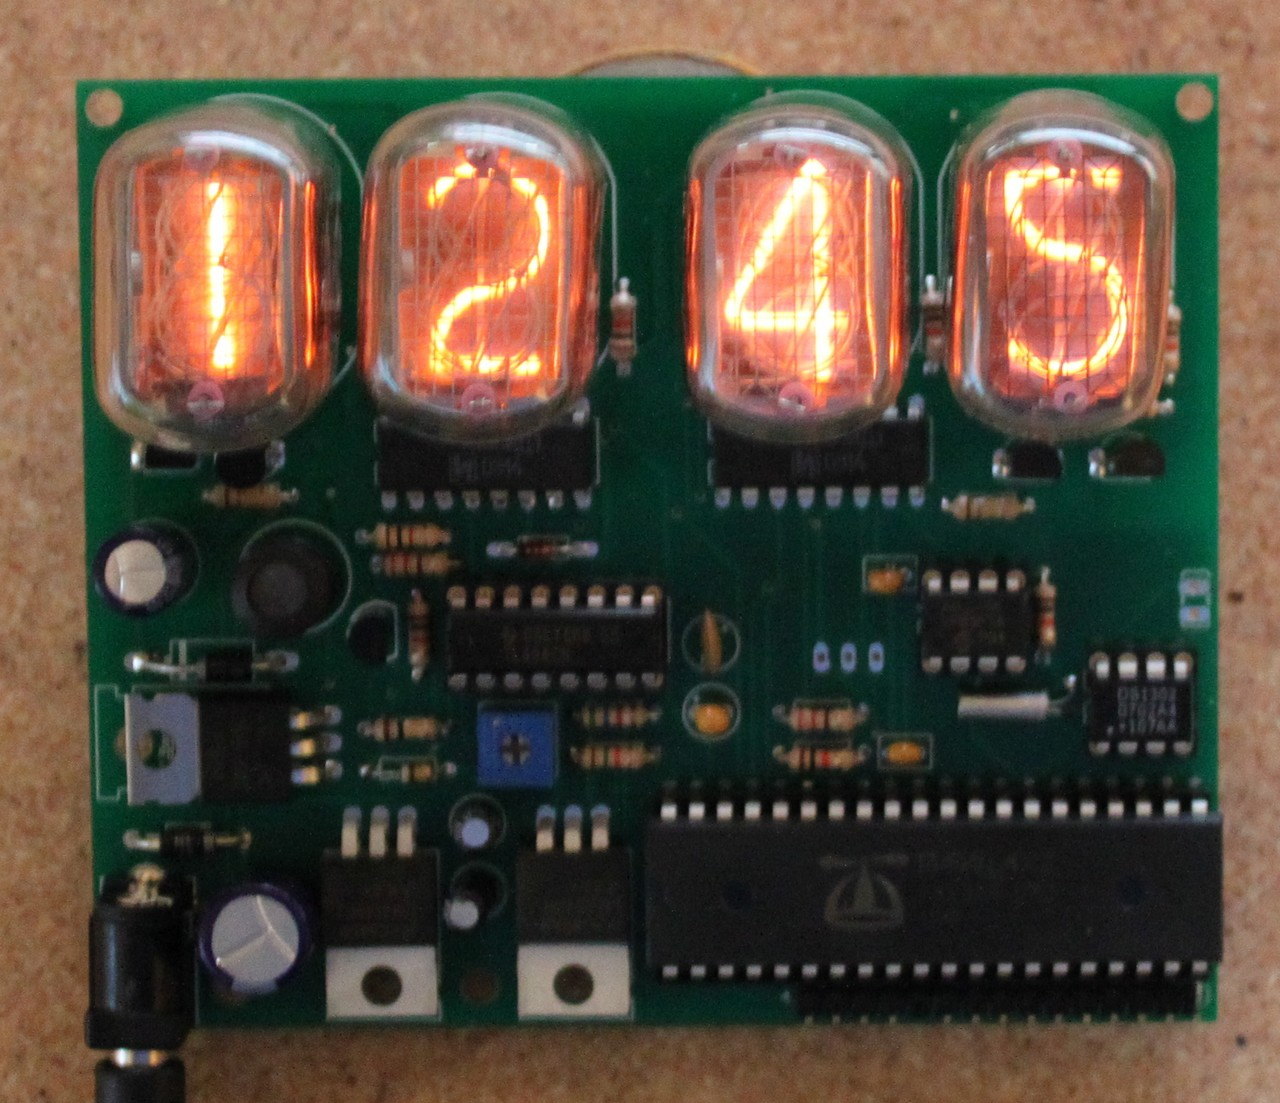 Propeller Powered In 12 Nixie Clock Dr Scott M Baker Board Build The Circuit Using Schematic On Right Lessons Learned